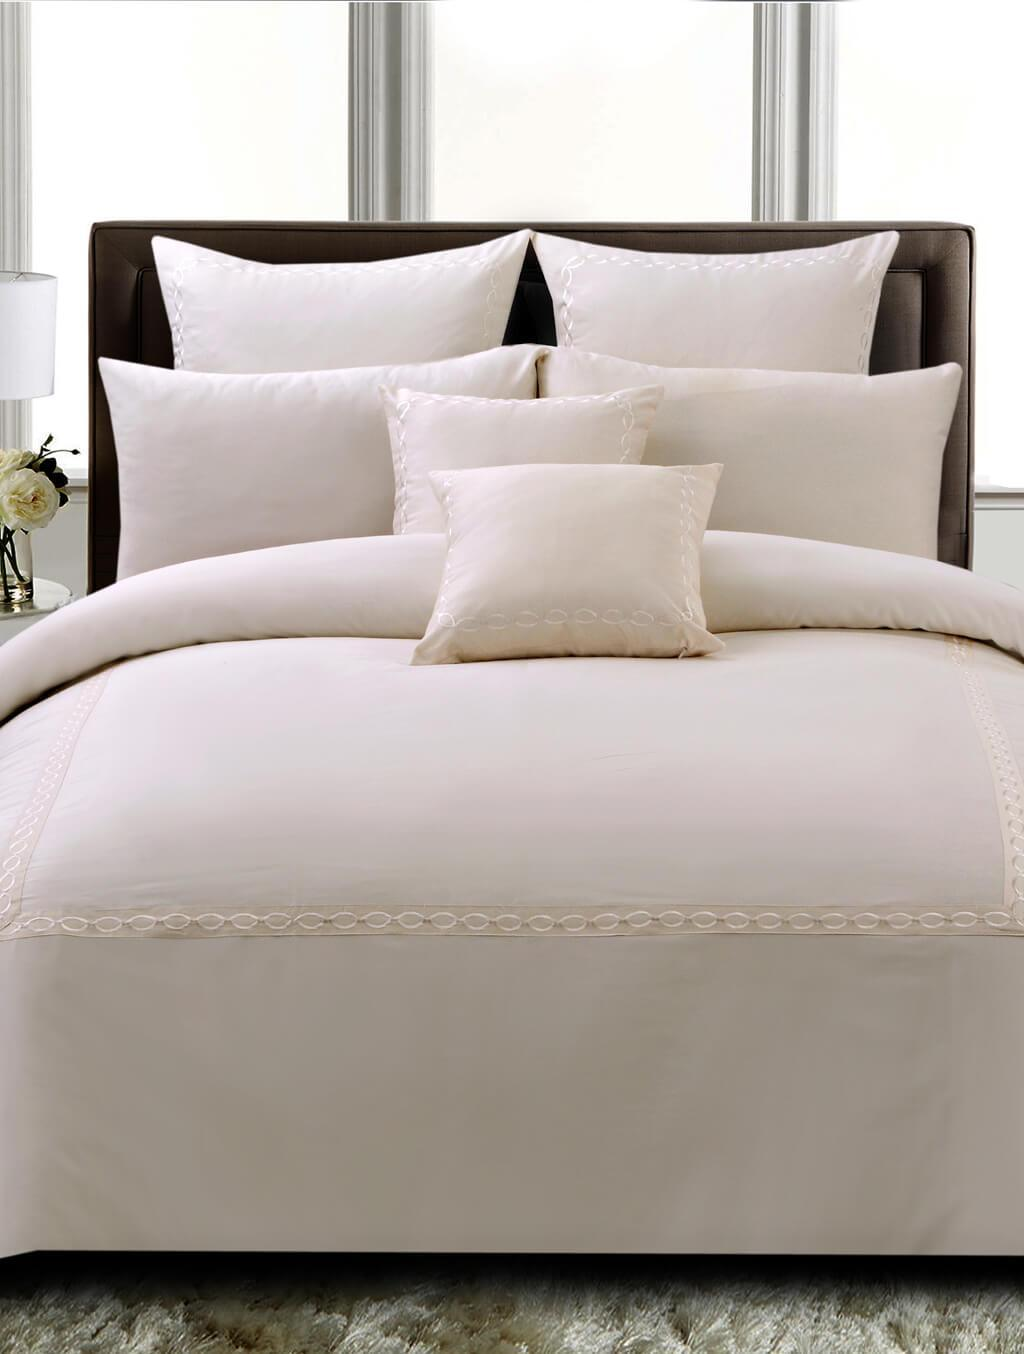 Cremor Hotel Bedding HOMBEDHOT BED SHEET-QUEEN